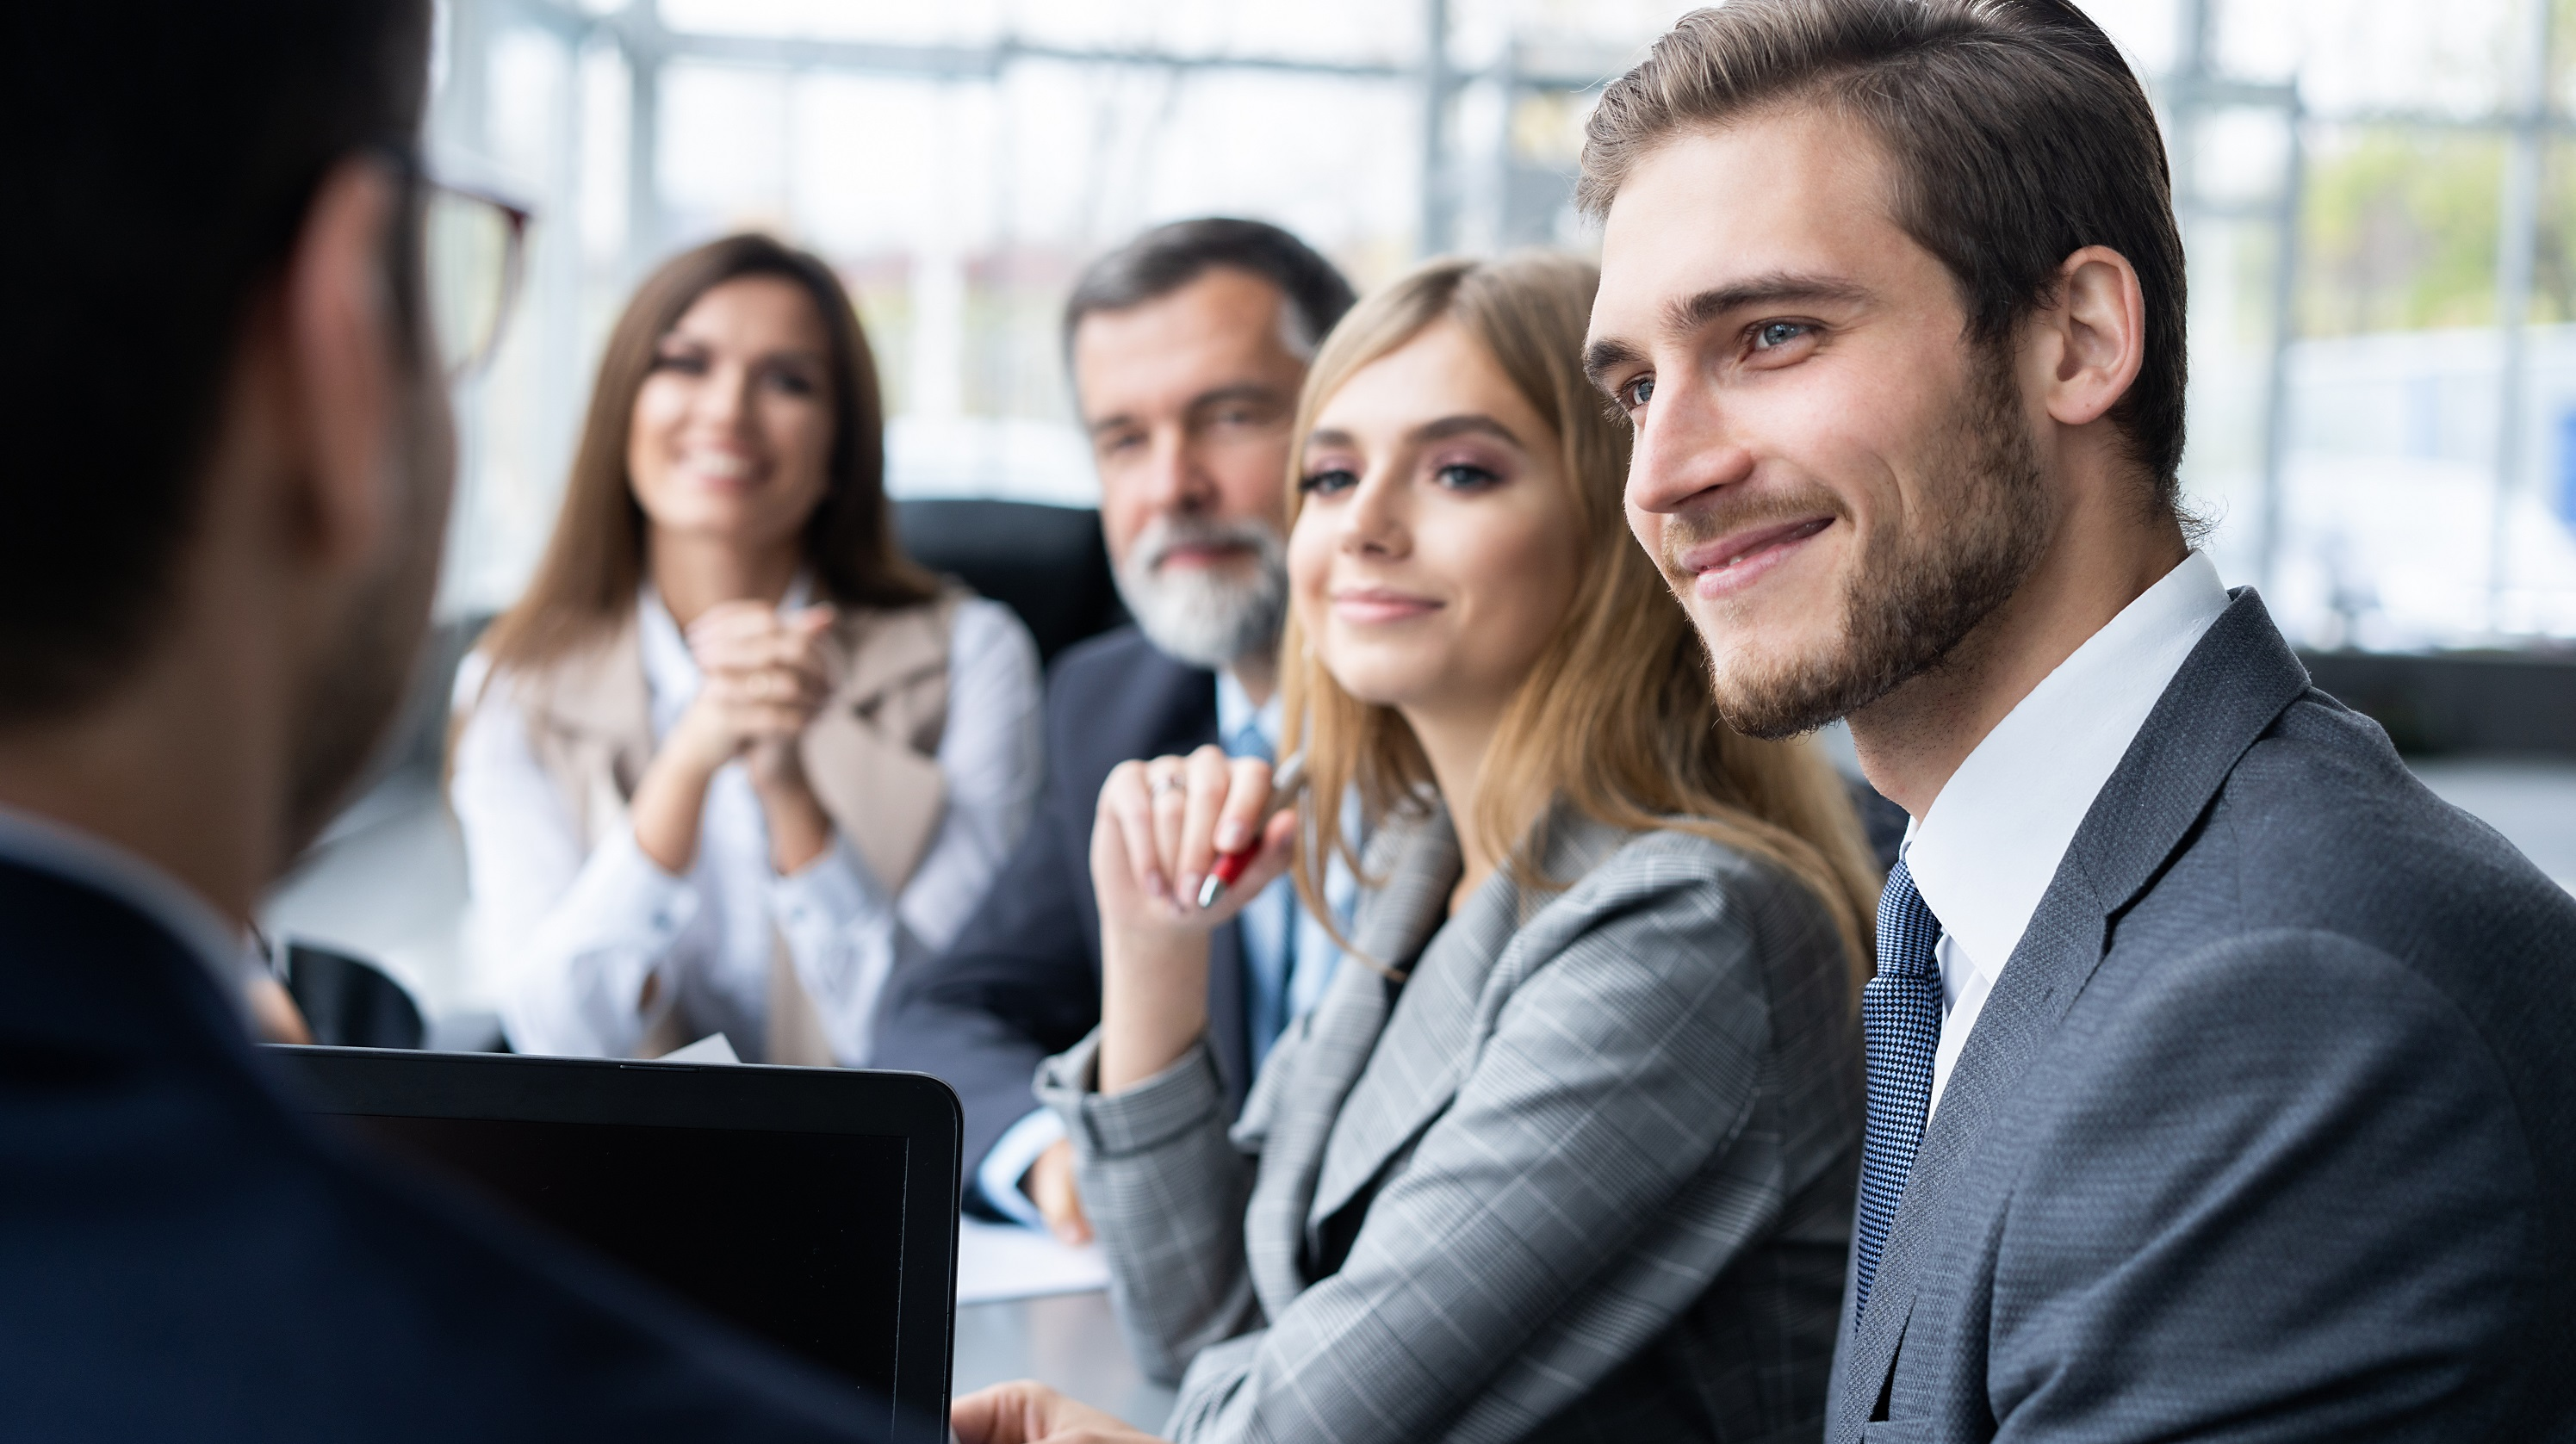 Creating a Best Workplace work environment: Aleader's responsibility